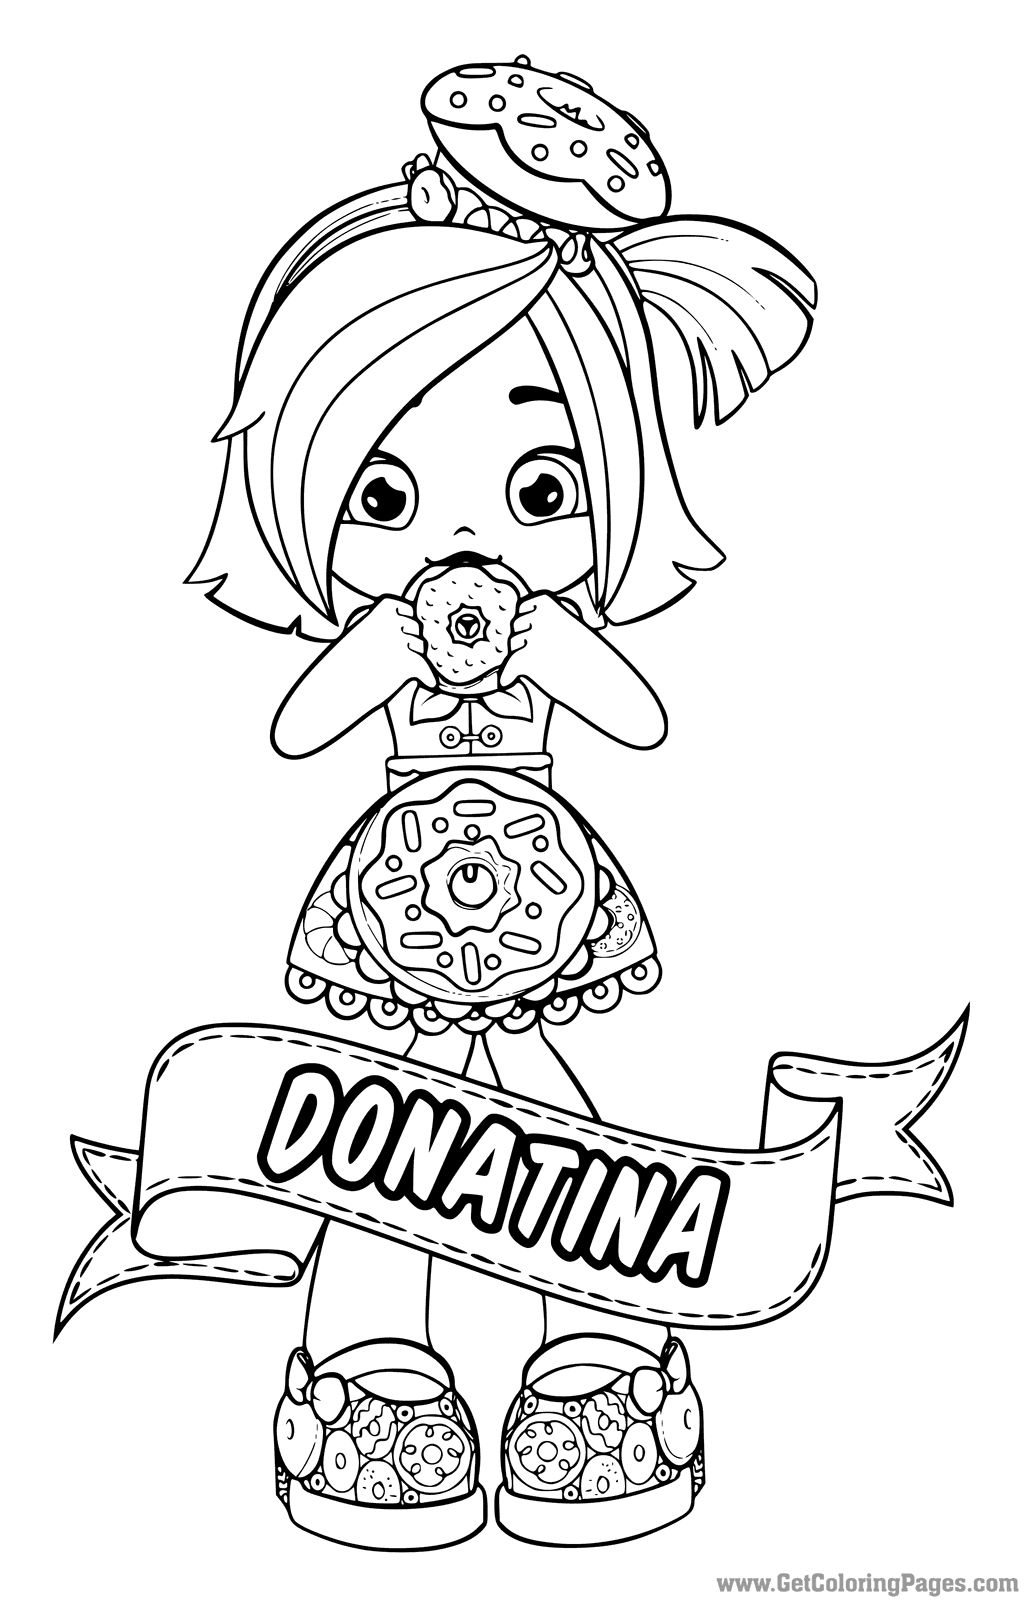 Shoppies Dolls Coloring Pages Printable Coloring Pages Shopkins Colouring Pages Shopkins Colouring Book